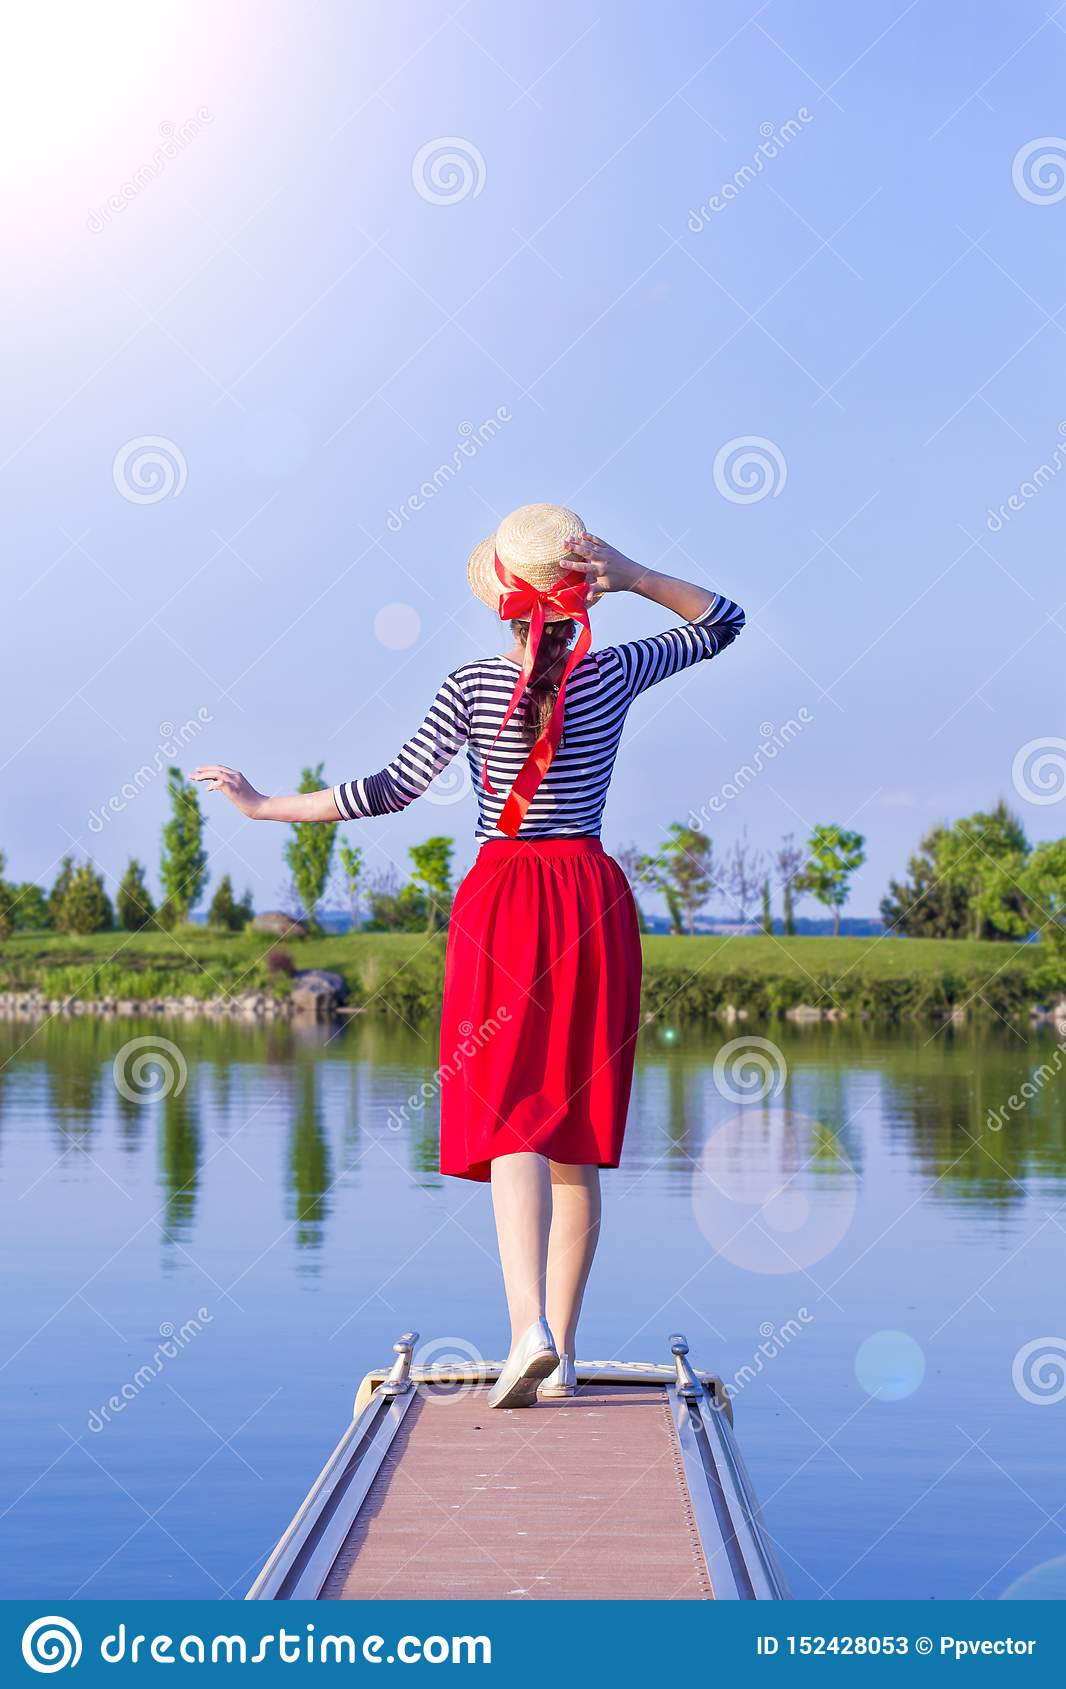 Beautiful girl in a straw hat on the pier from the back. Girl in a red skirt and a sailor suit on the pier at sunset